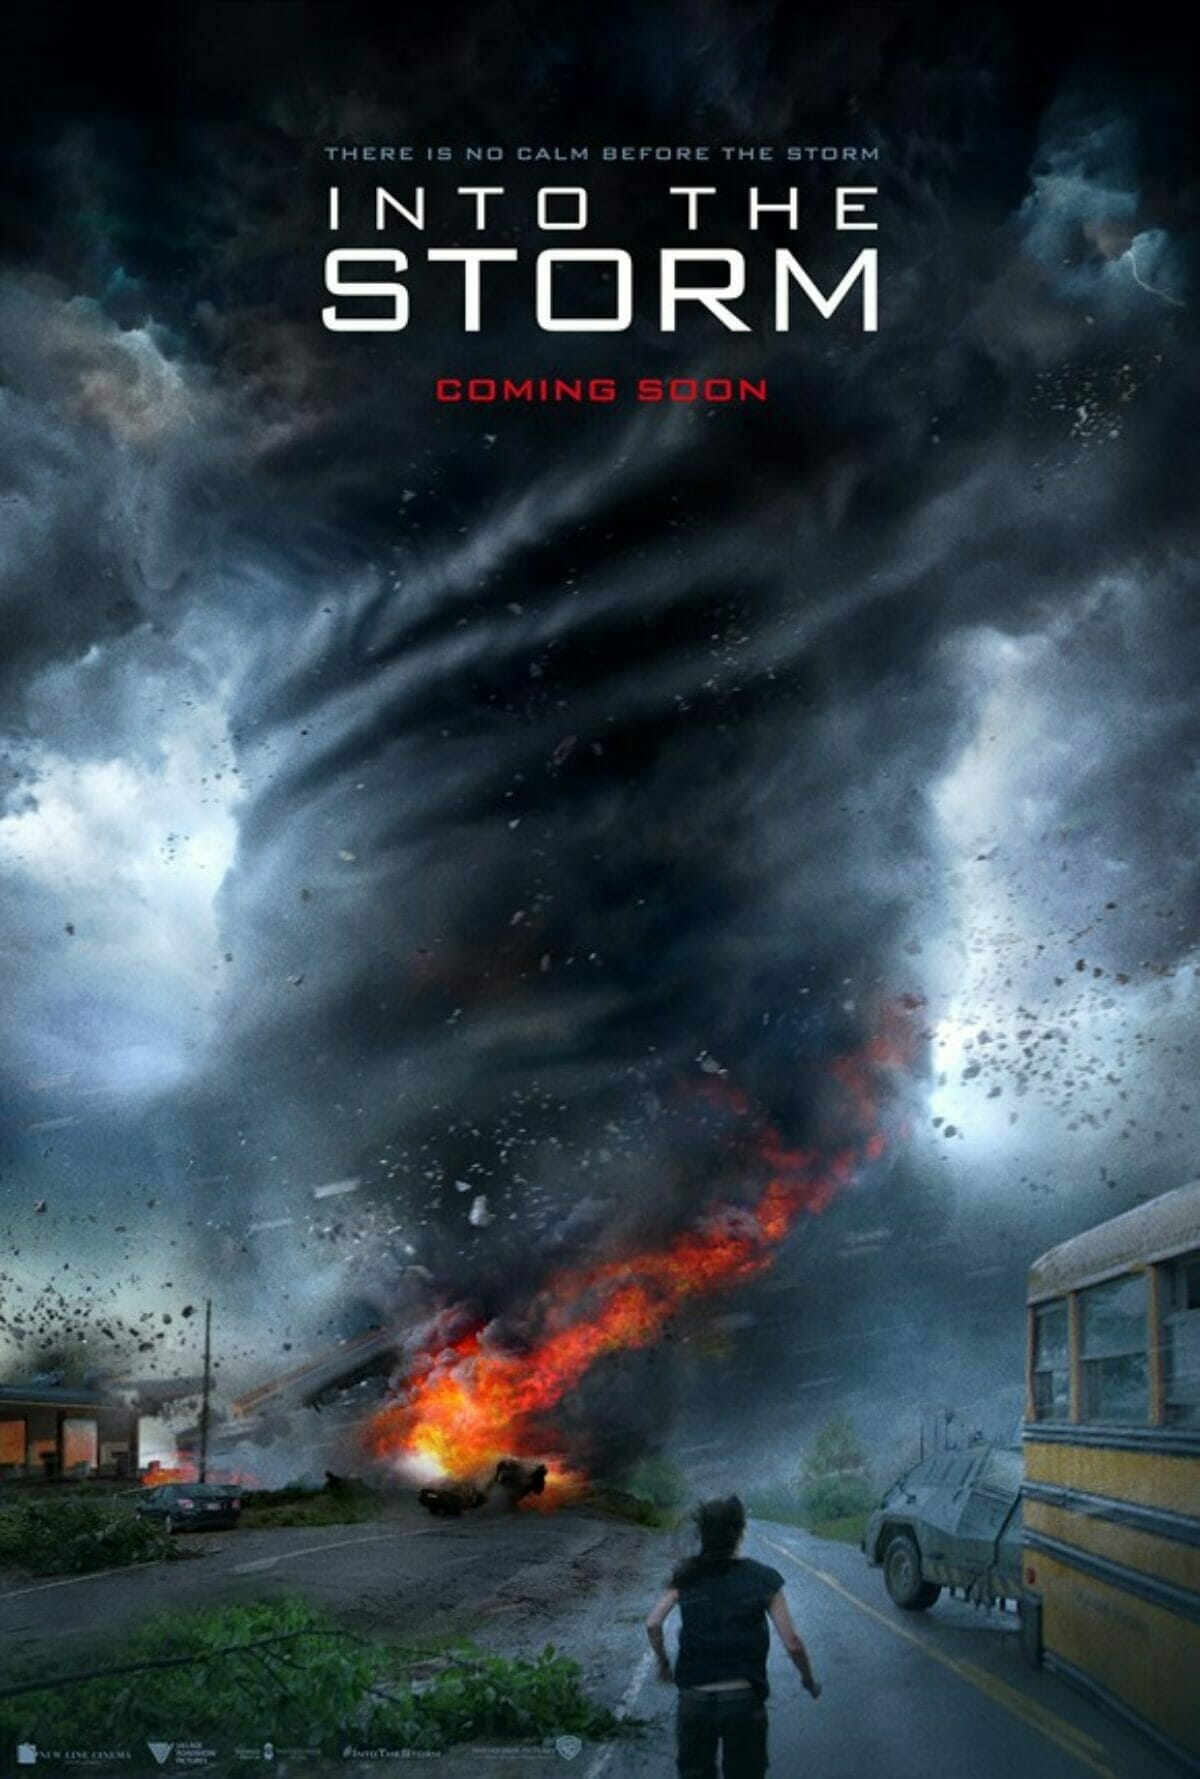 Into-the-storm-black-storm-poster